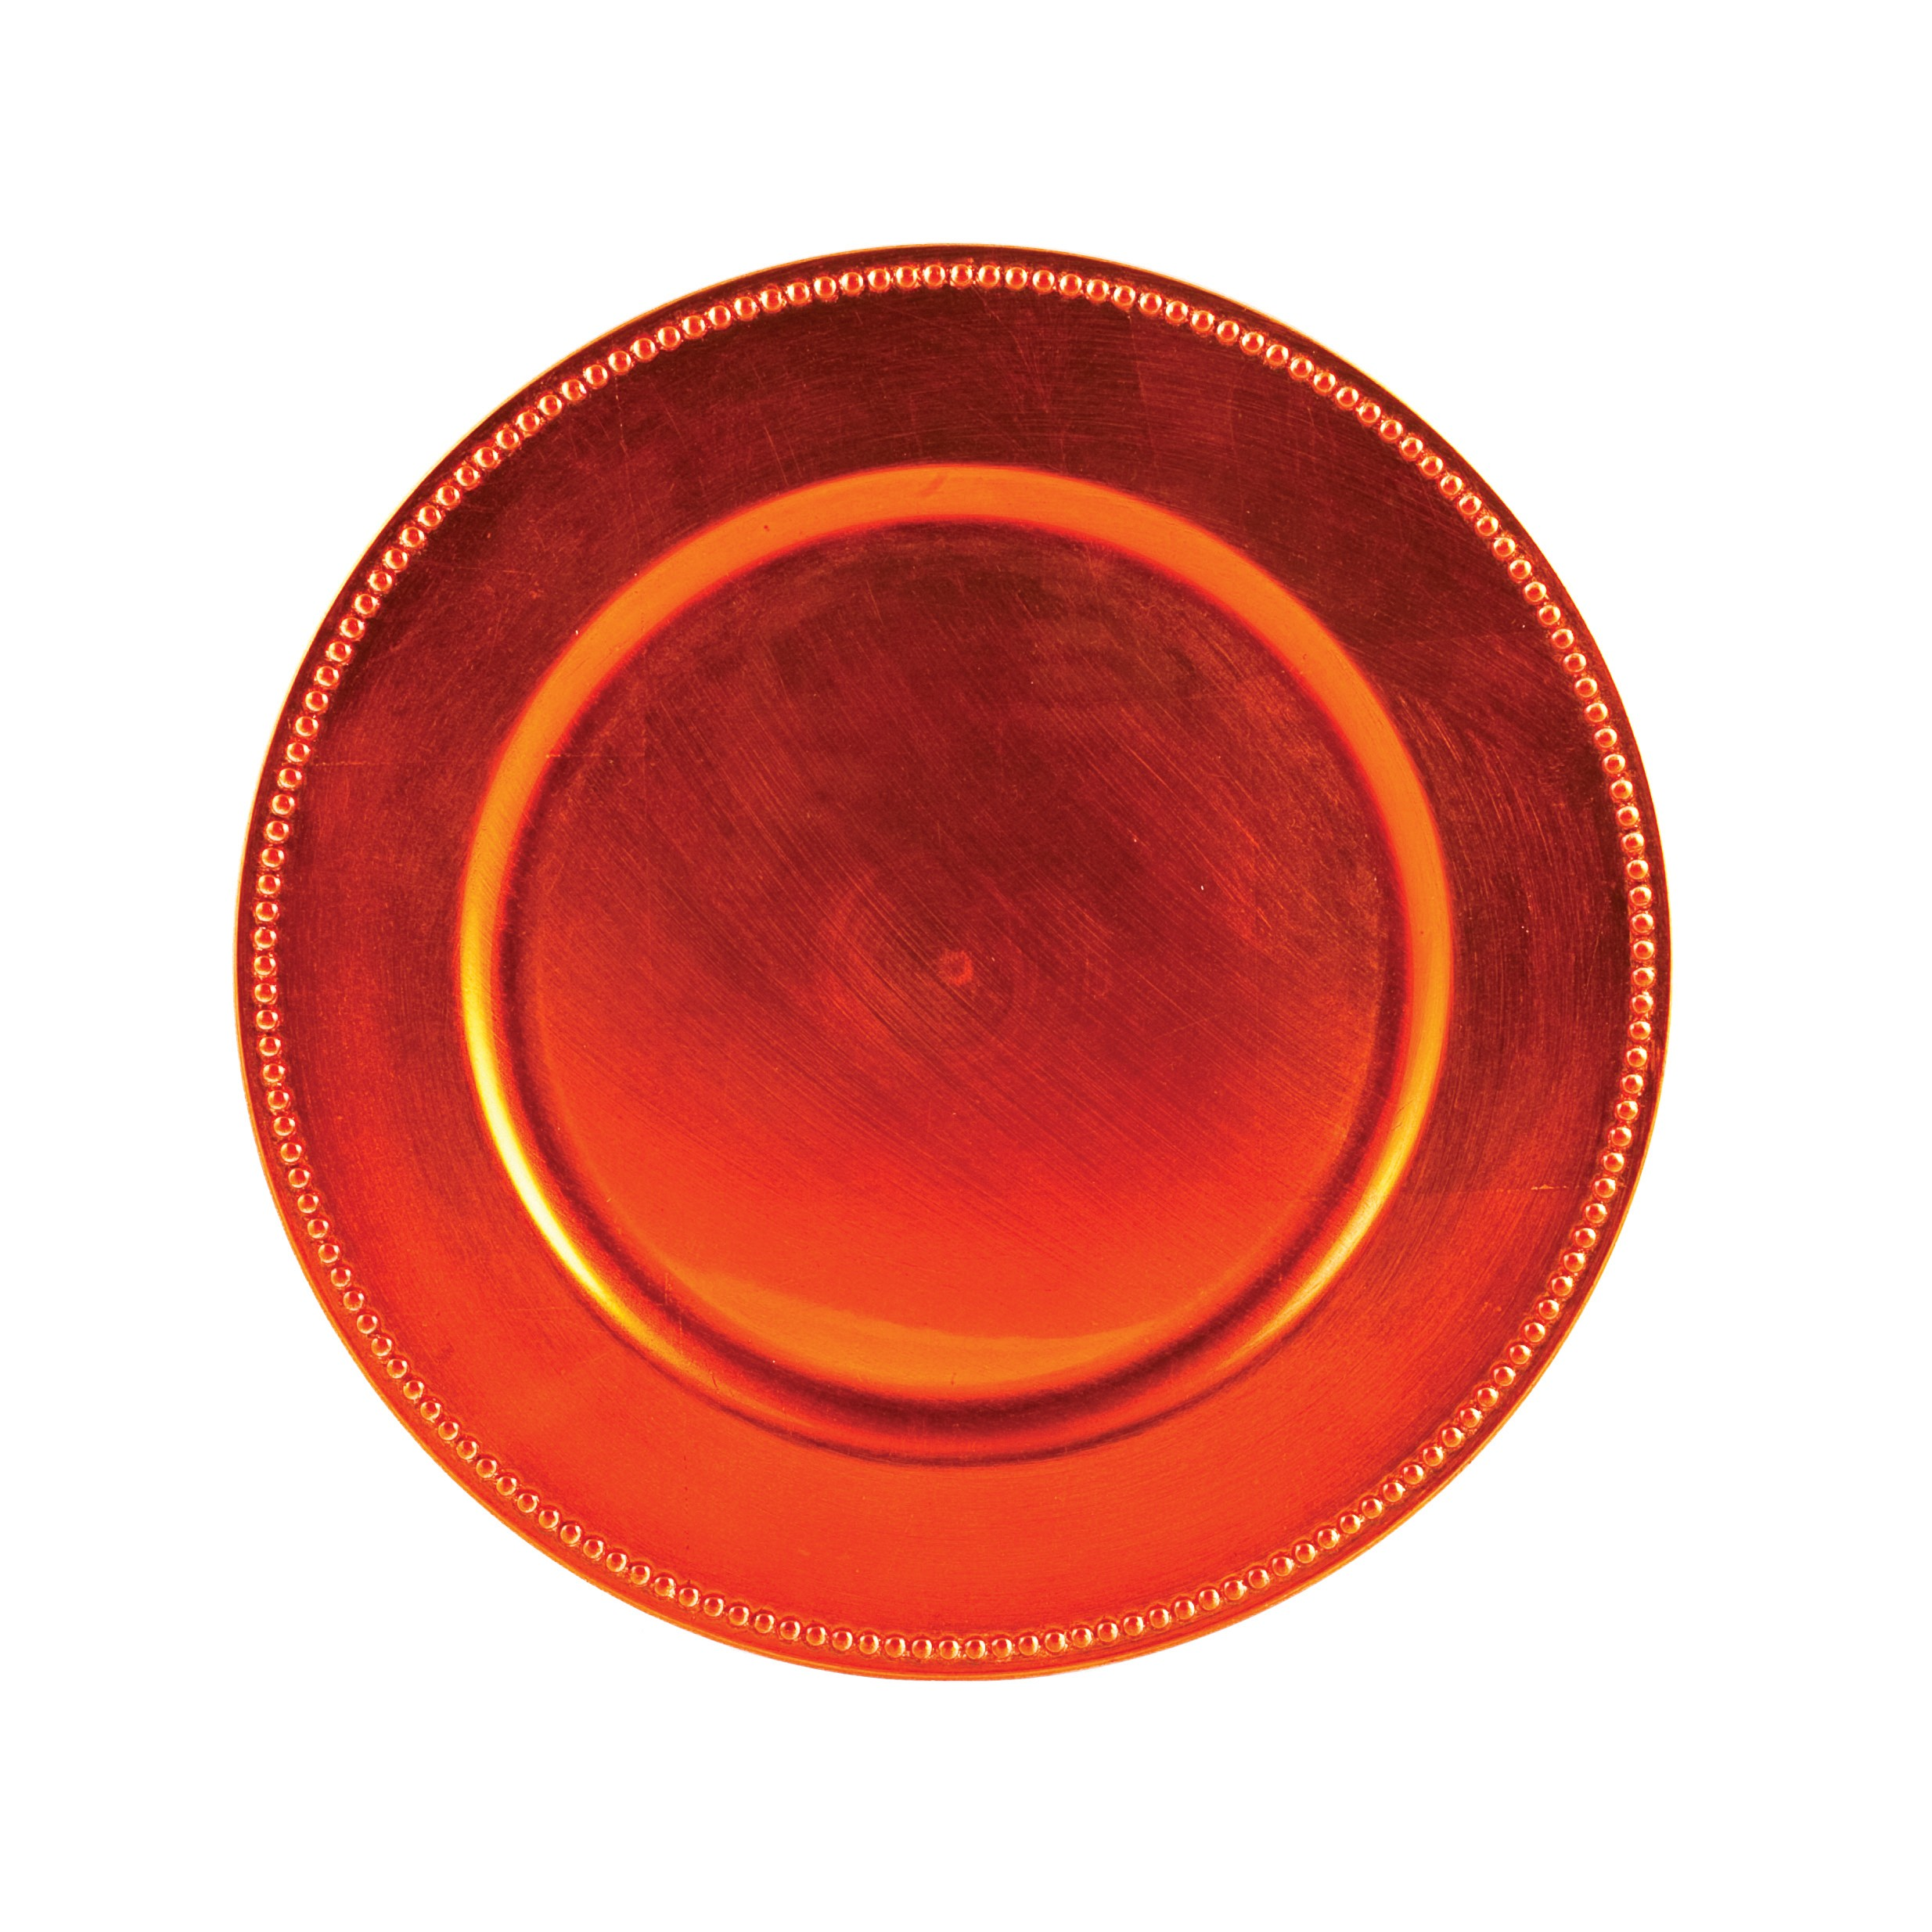 "Ya Ya Creations CHRG_1302_ORNG Beaded Orange 13"" Charger Plate"